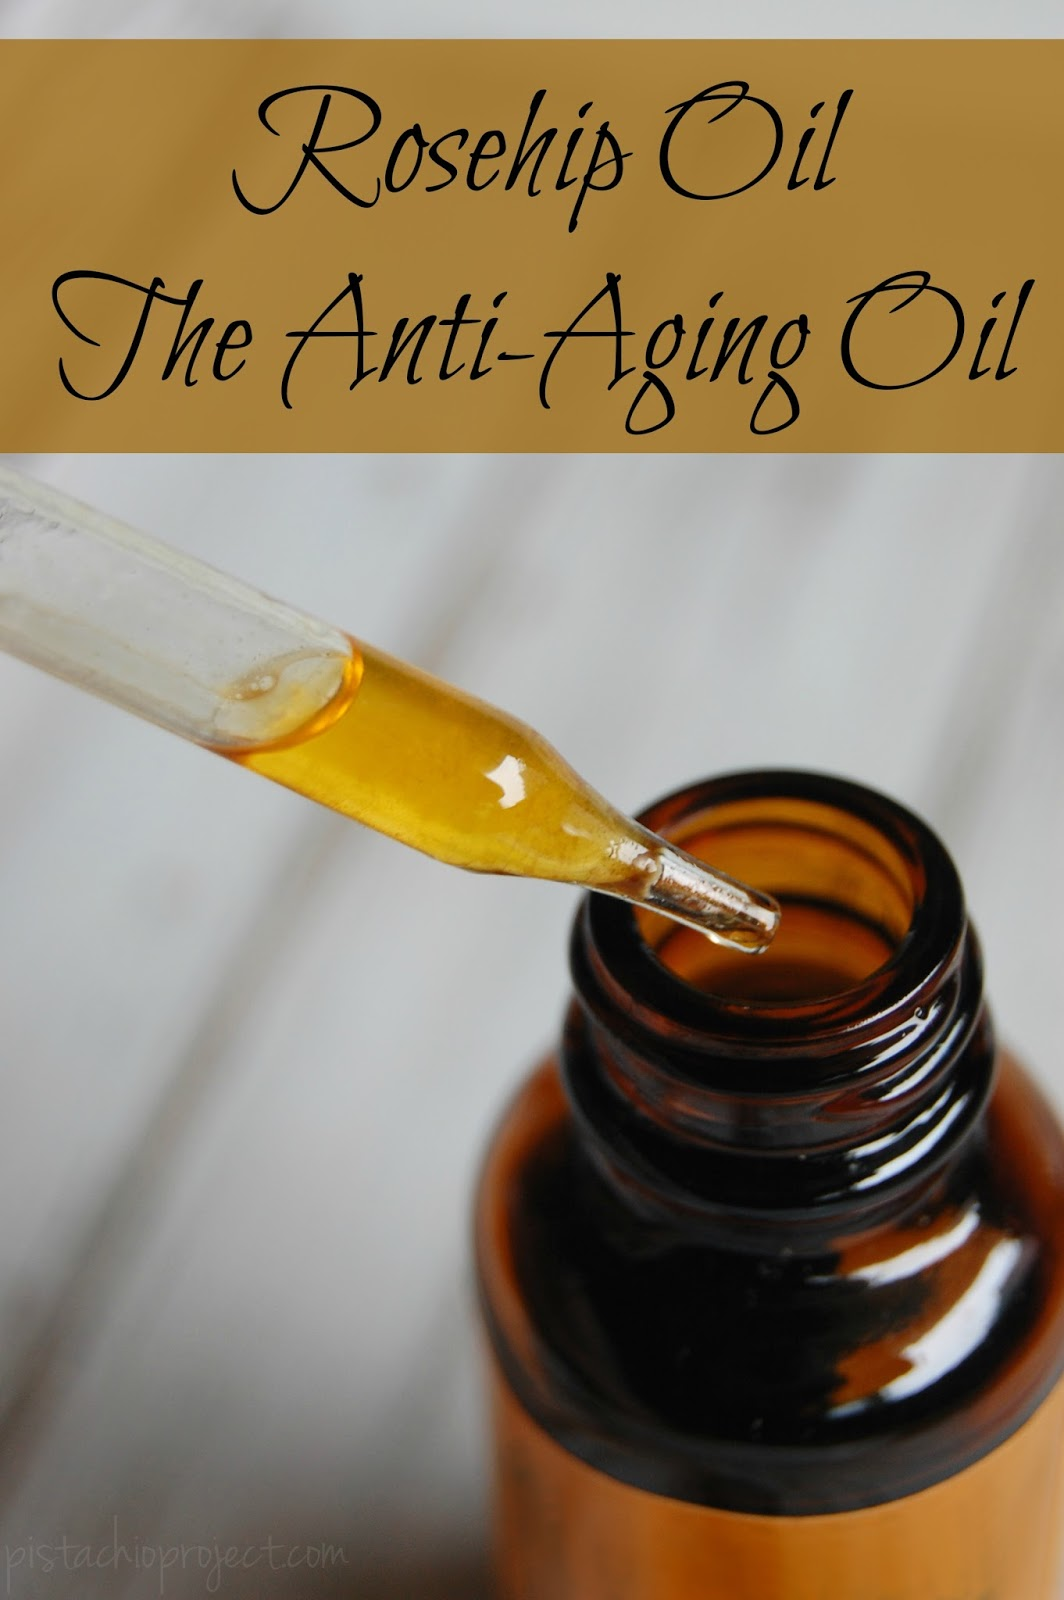 Rosehip Oil - The Anti-Aging Oil - Great moisturizer, Reduce wrinkles, Fade scars and age spots, Helps fight pre-mature aging, Can help treat eczema and psoriasis, Evens out skin tone!